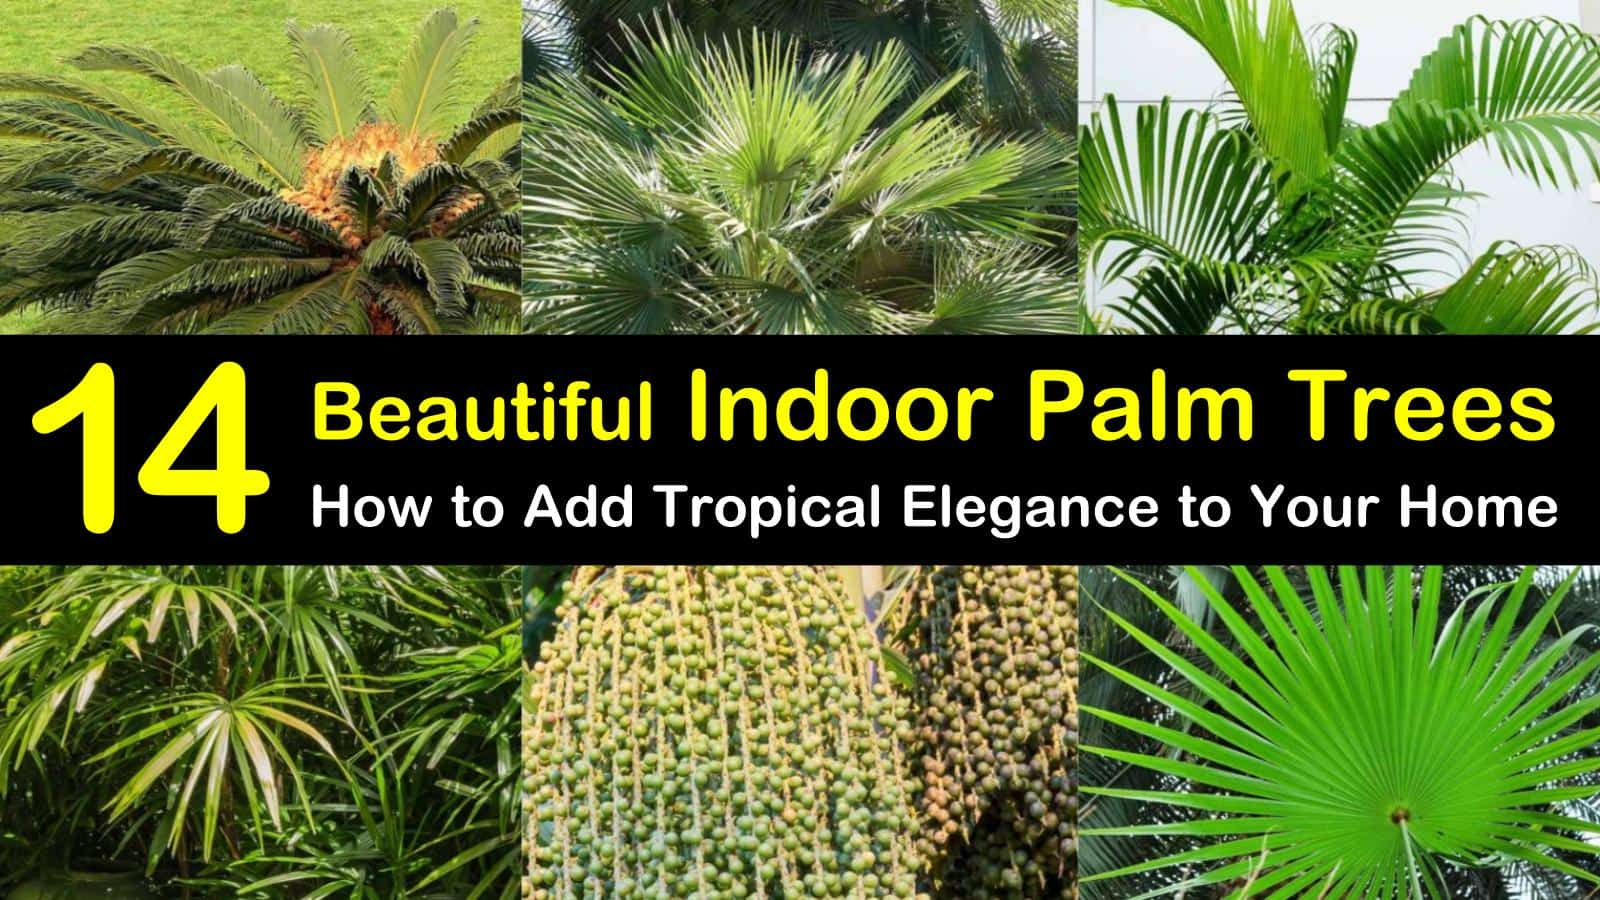 14 Beautiful Indoor Palm Trees: How to Add Tropical Elegance ... on